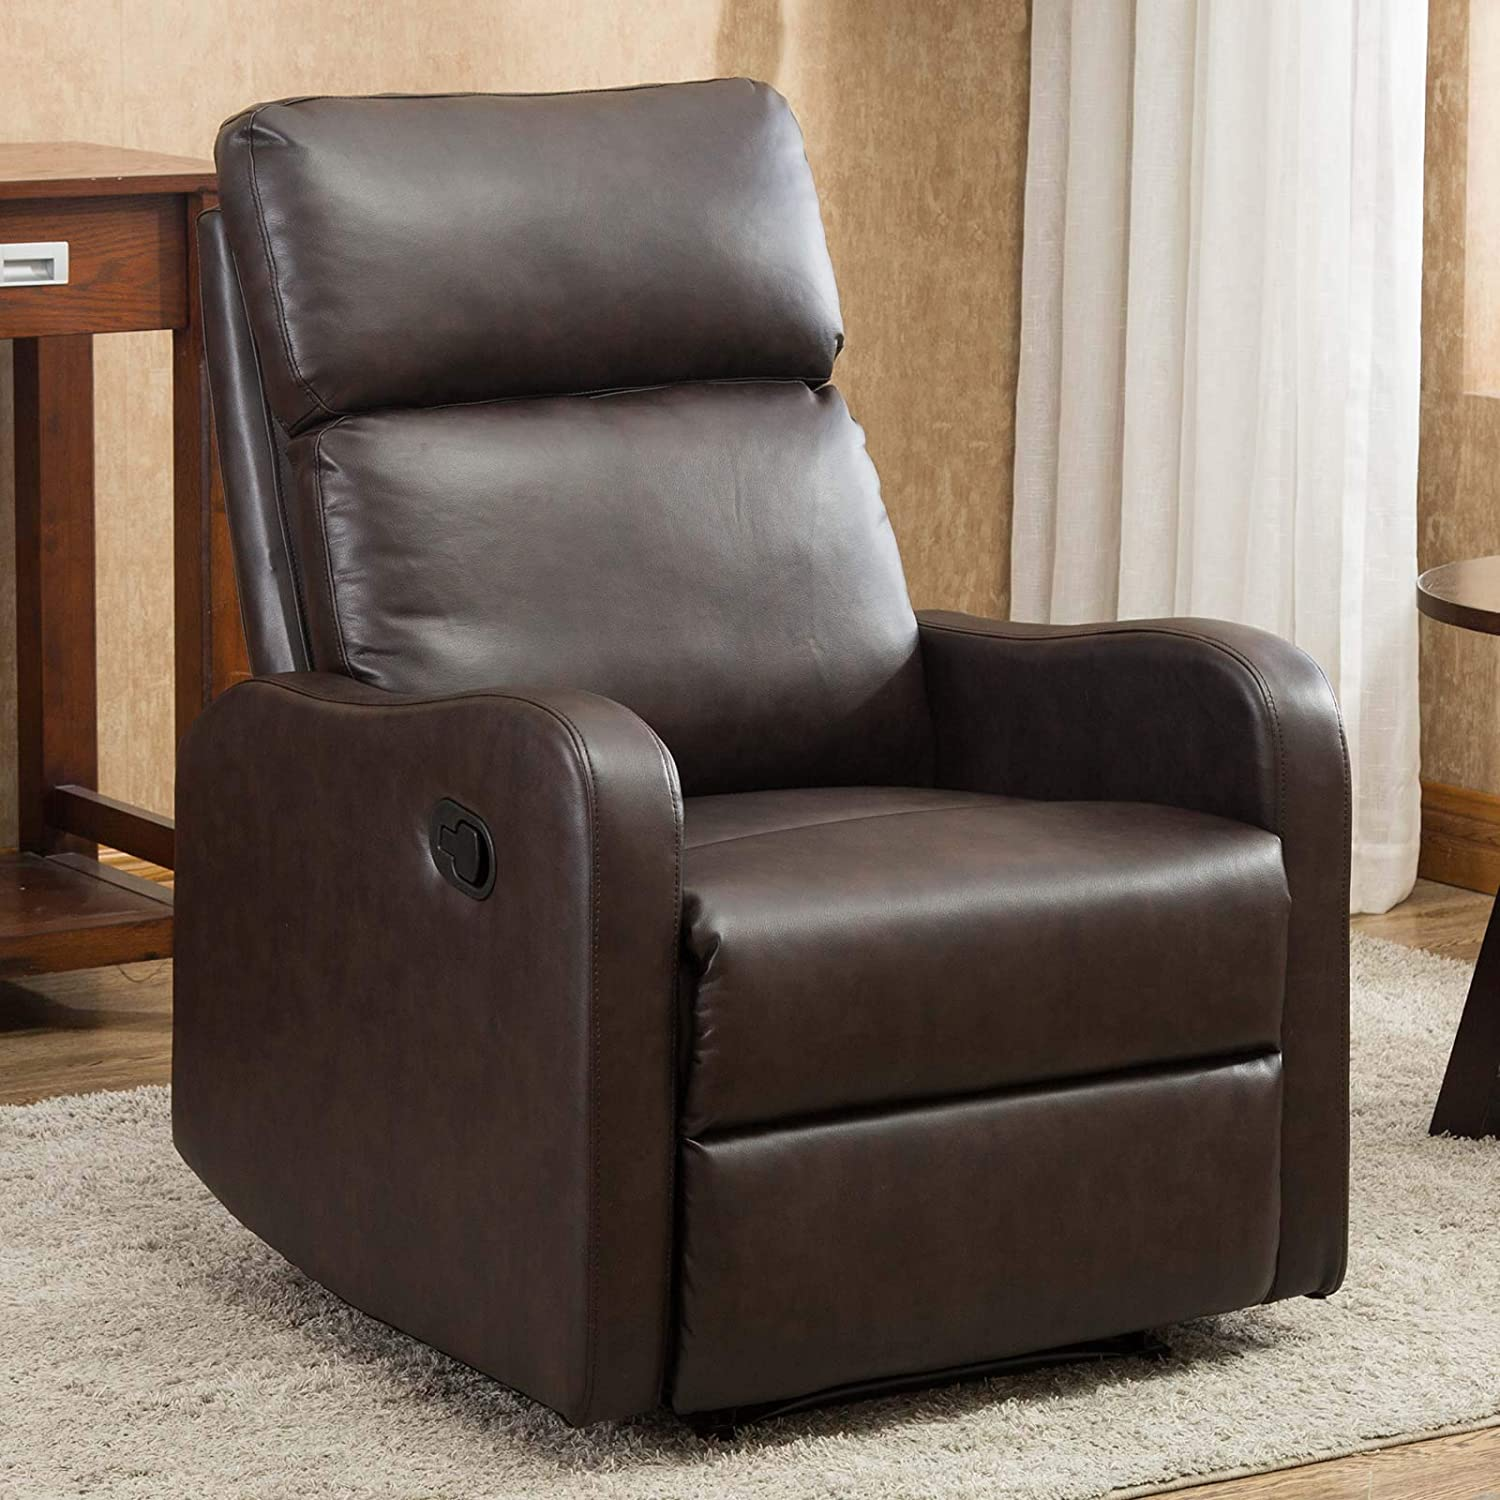 CANMOV Recliner Chair, Manual Leather Single Seat Home Theater Seating Chair with Overstuffed Back, Brown01